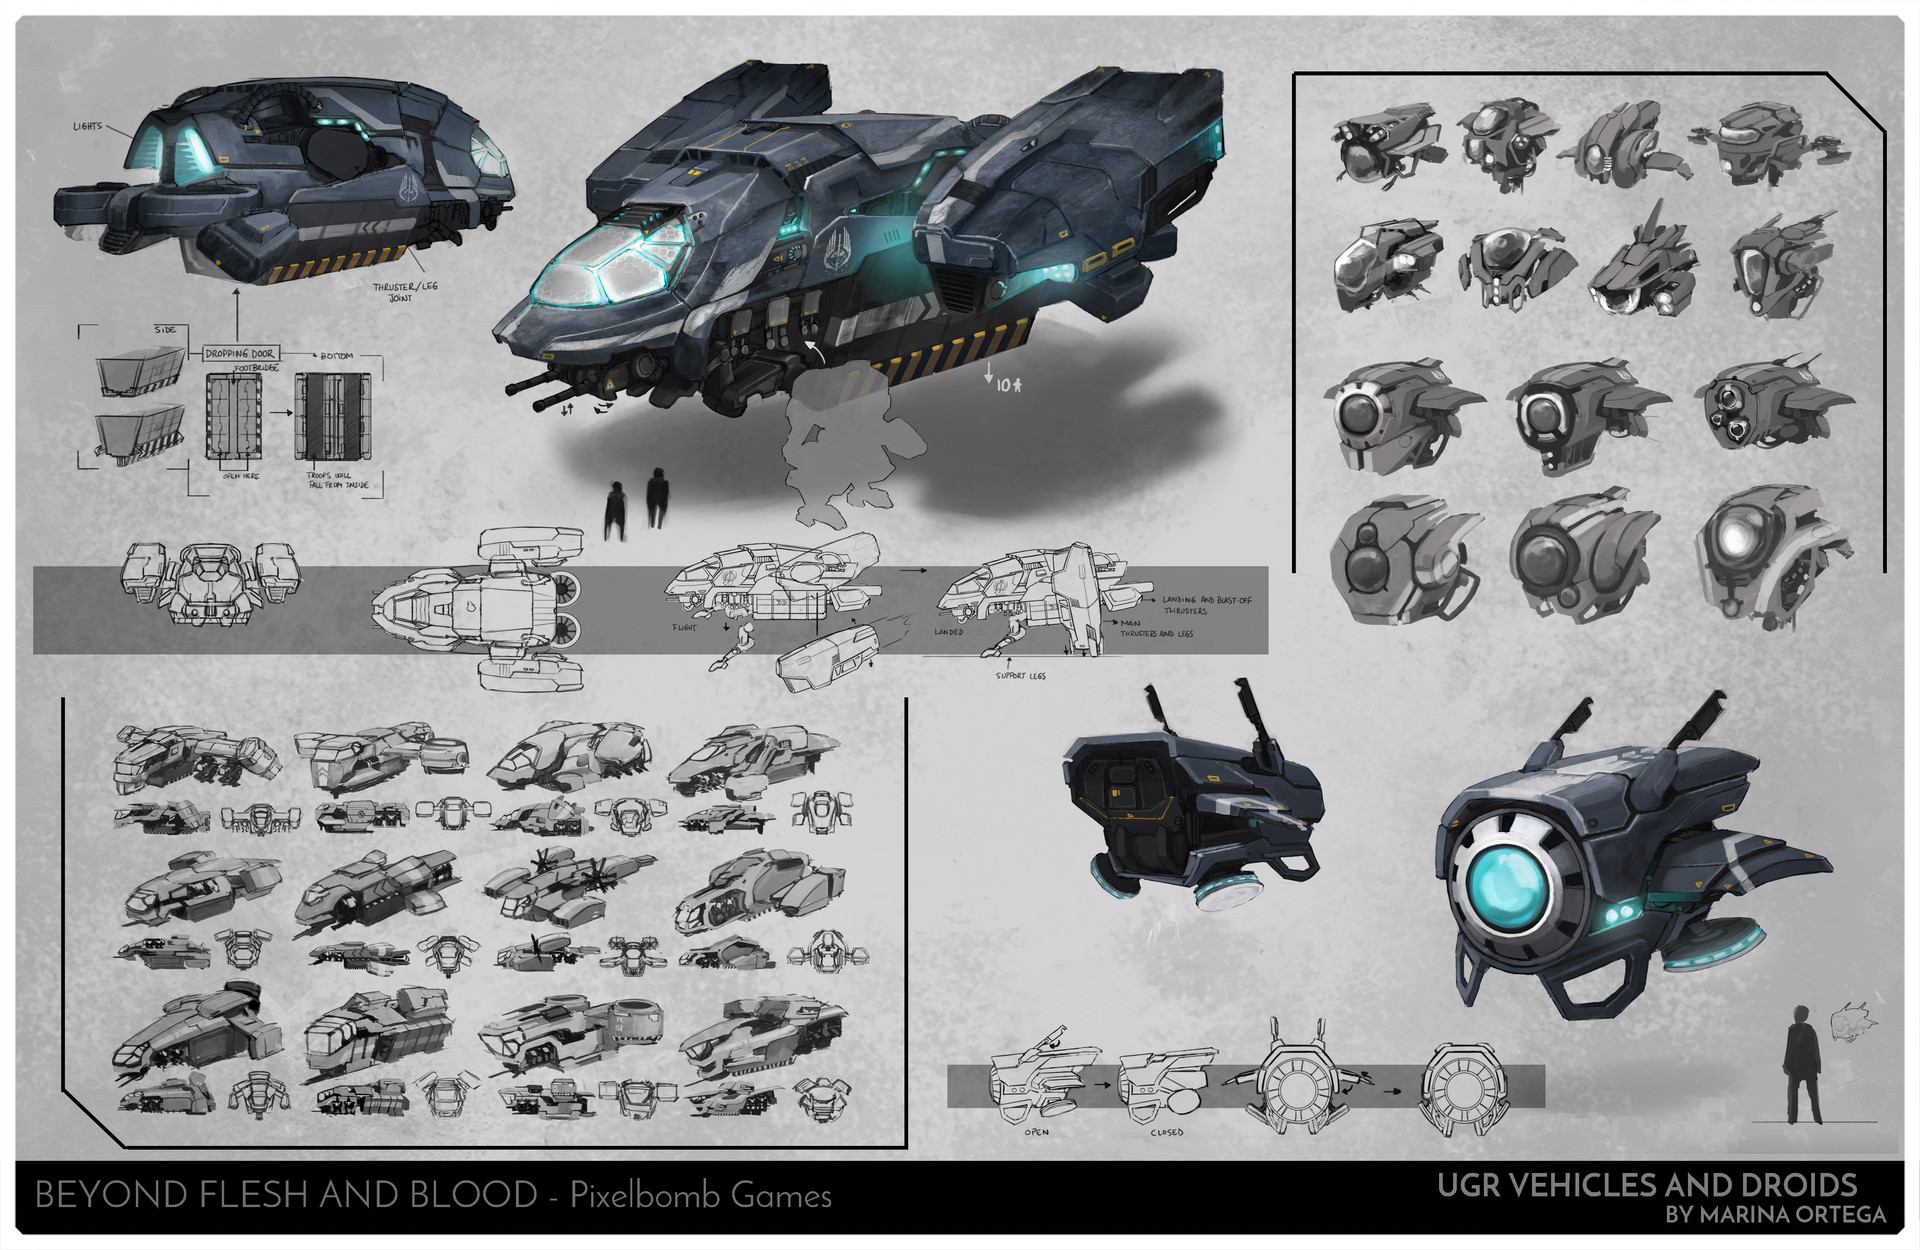 Marina ortega www artofmarinaortega com concept art page5 vehicles and droids